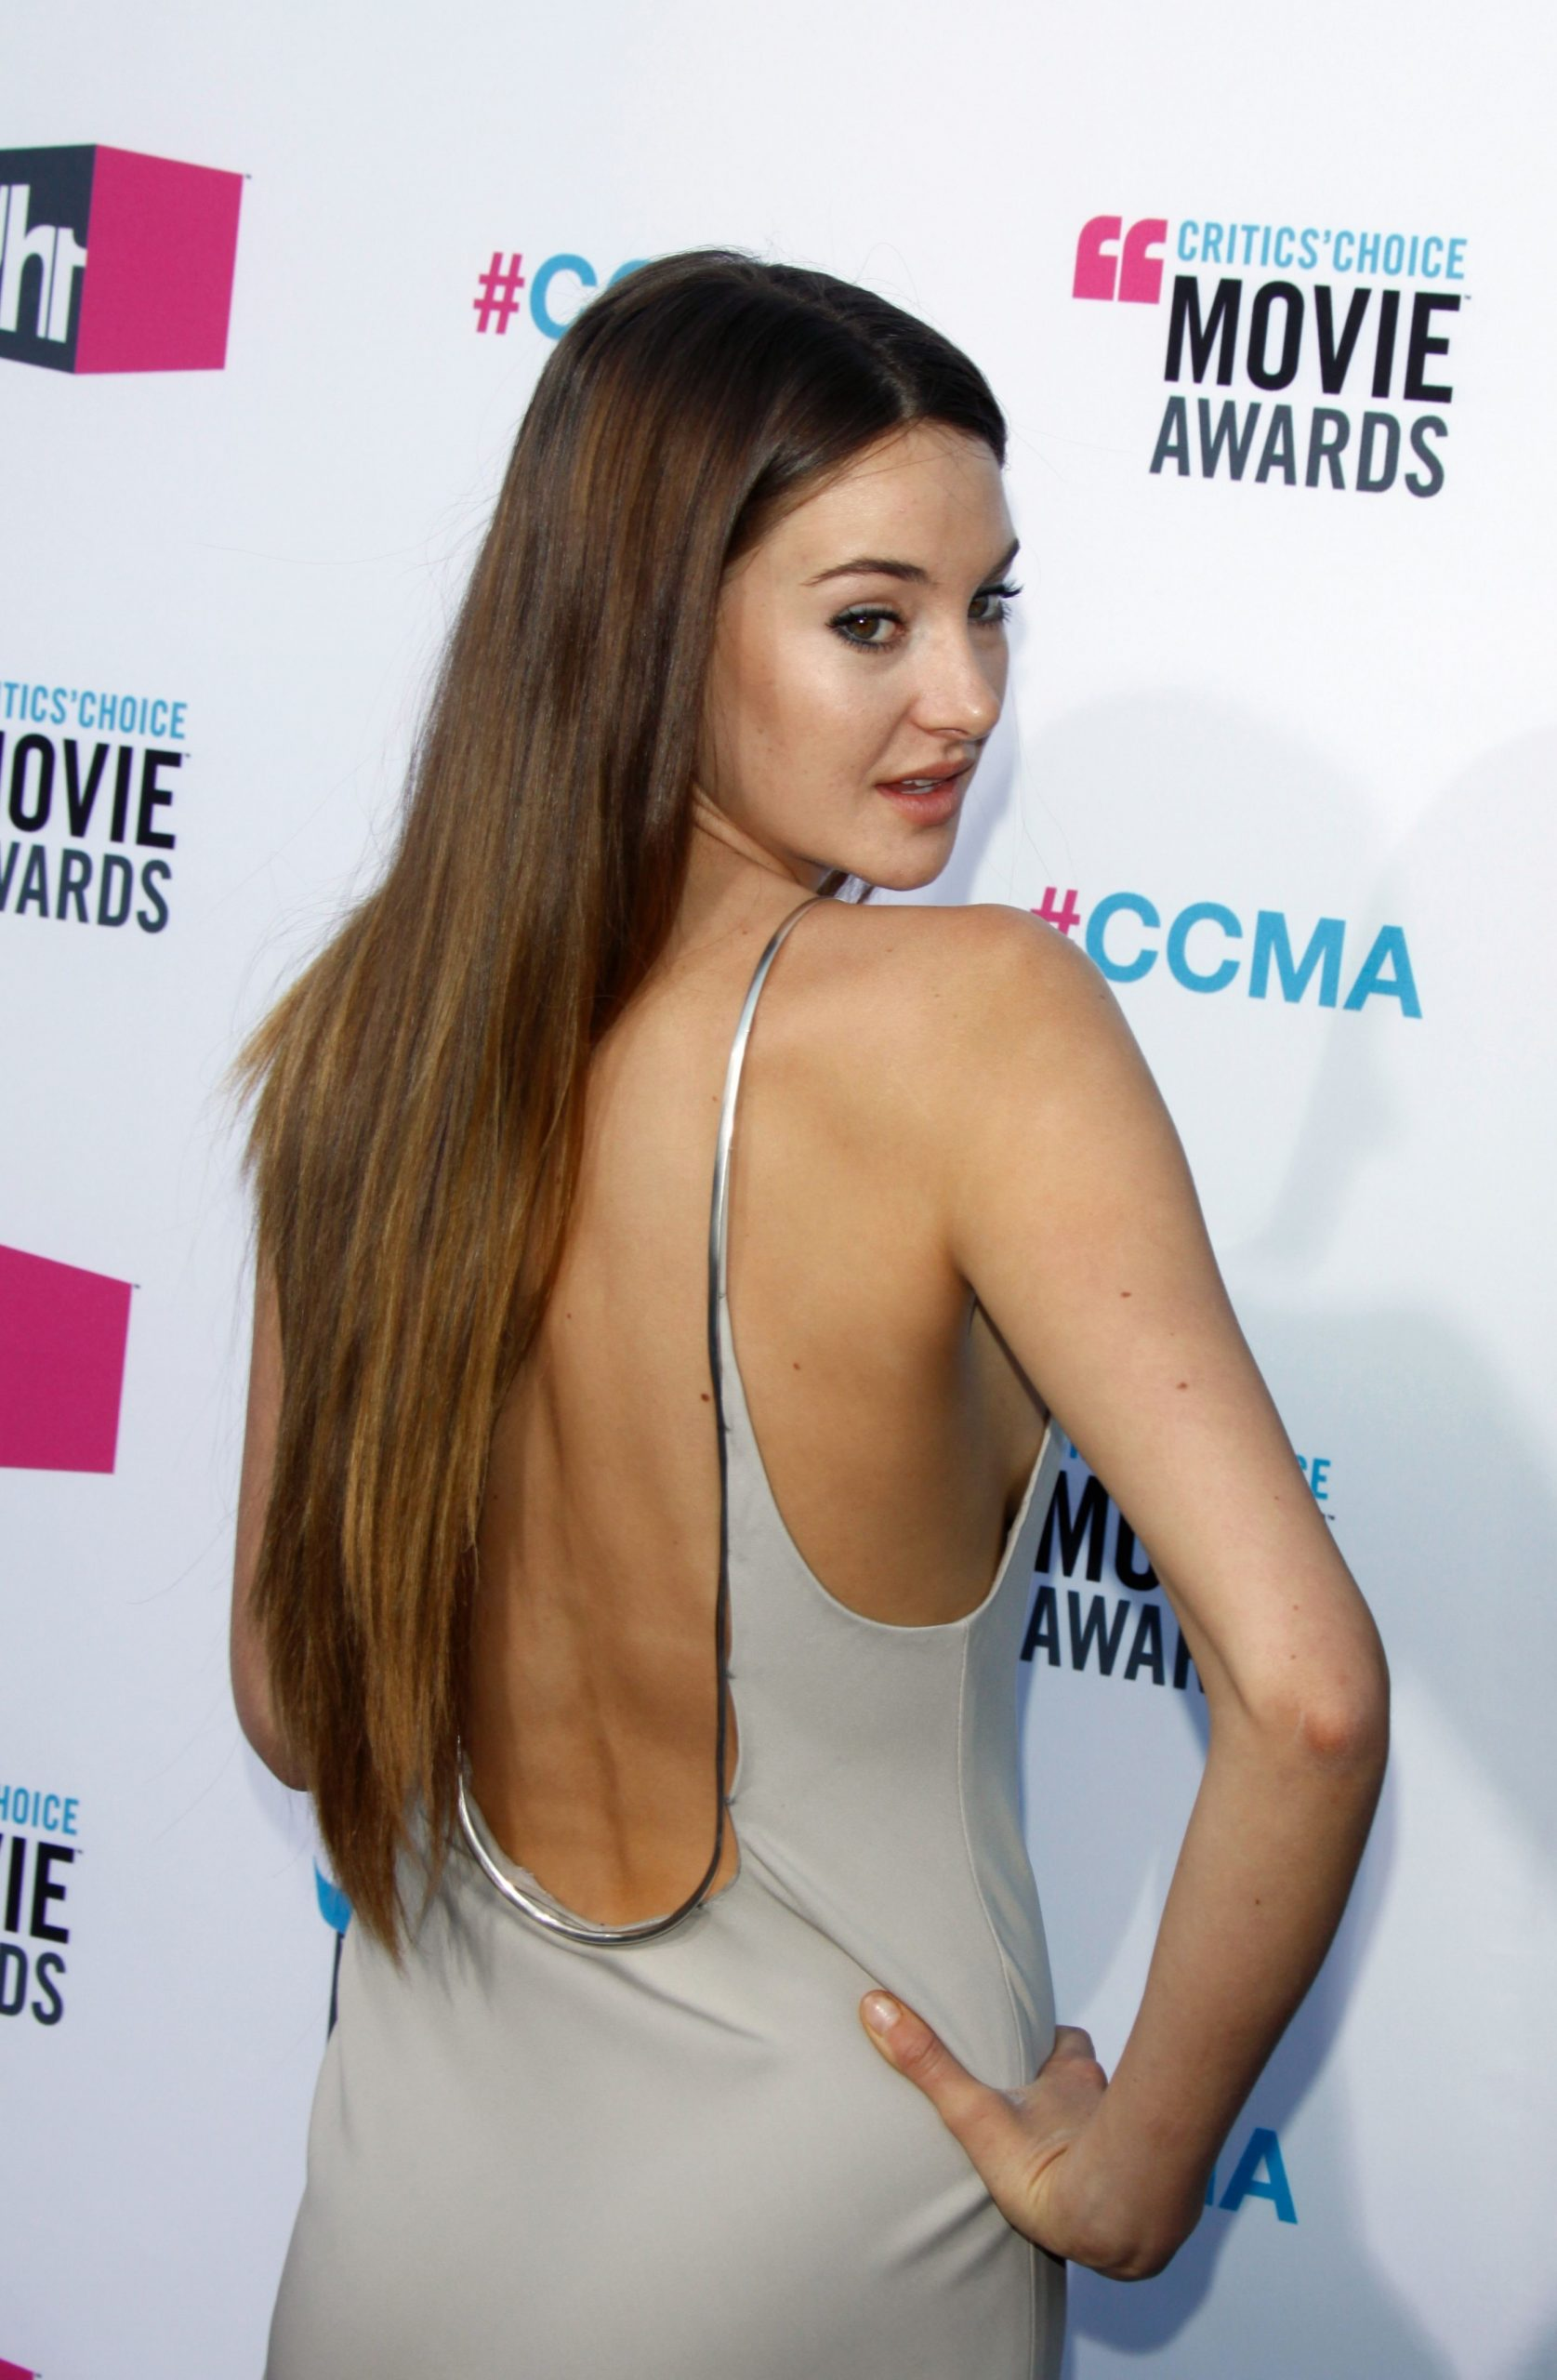 Pictures of Shailene Woodley